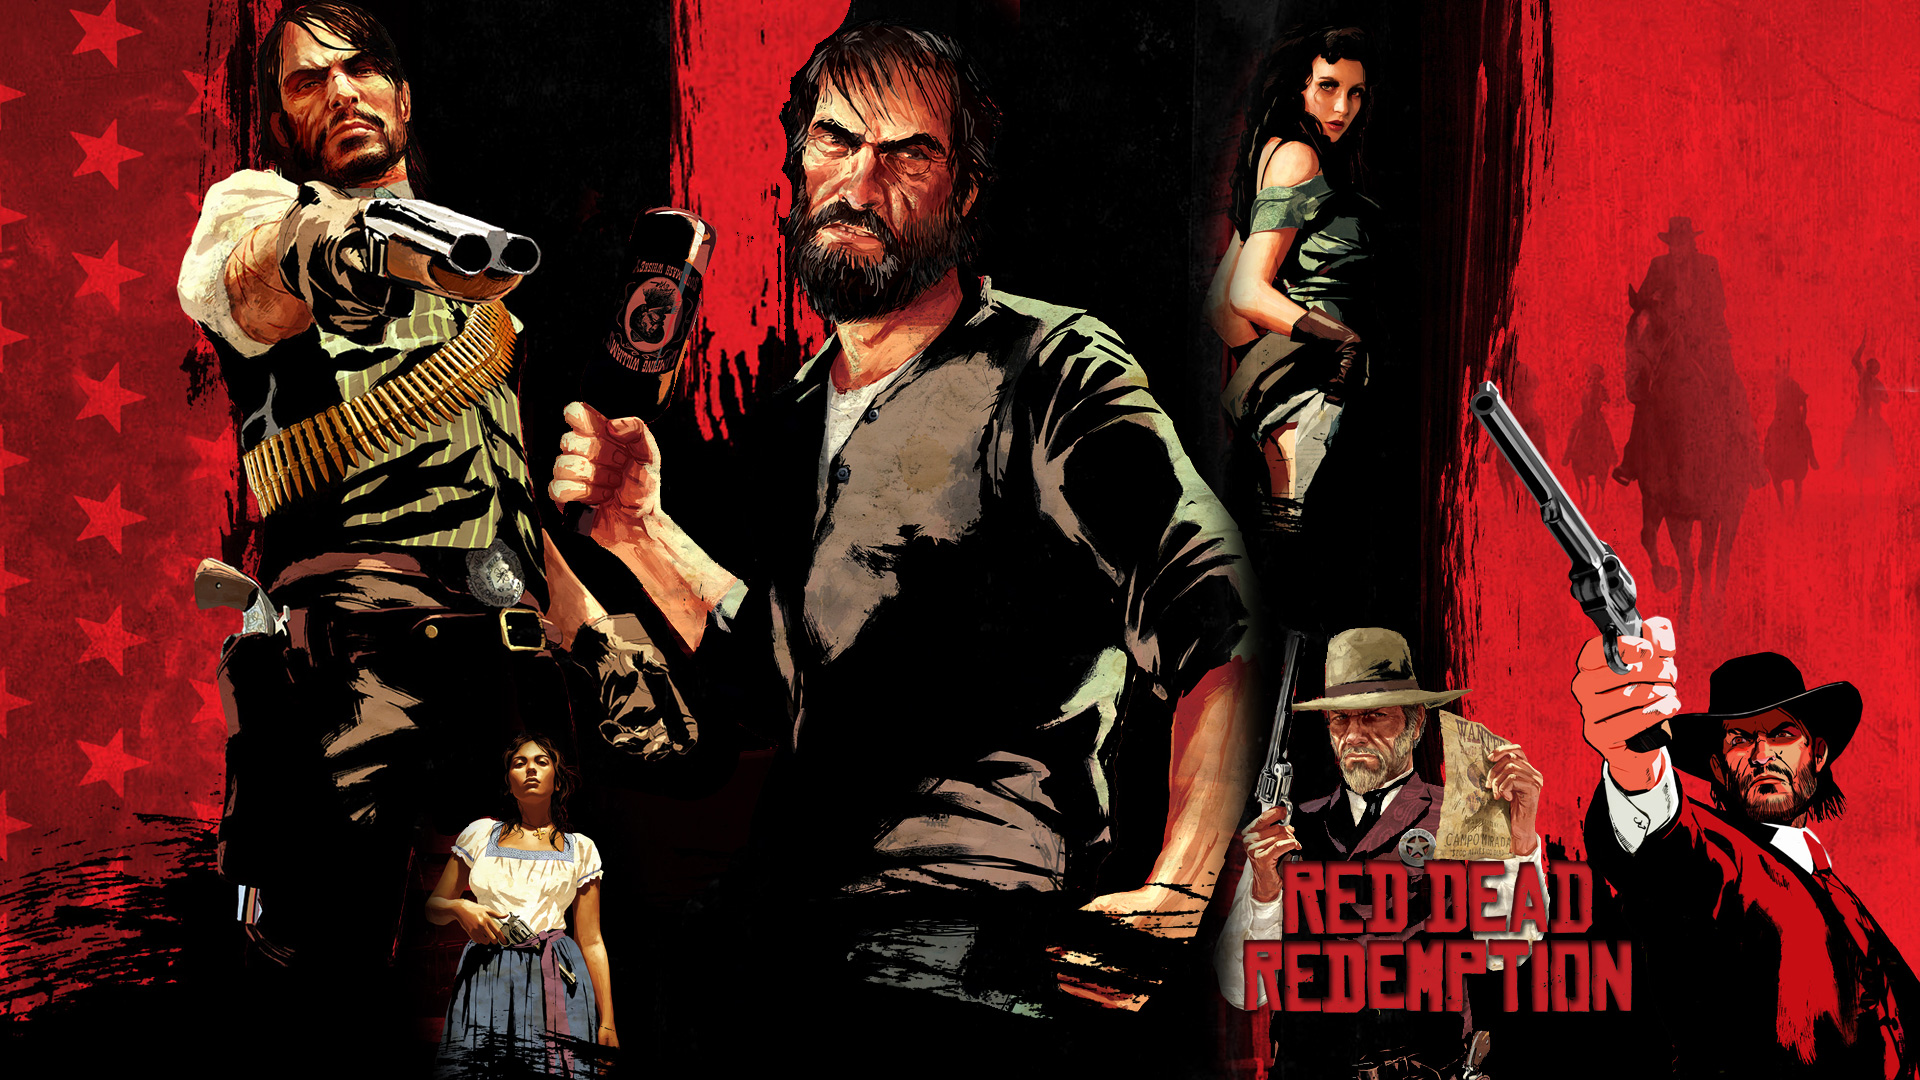 red_dead_redemption___wall_2_by_mattsimmo-d30sl56